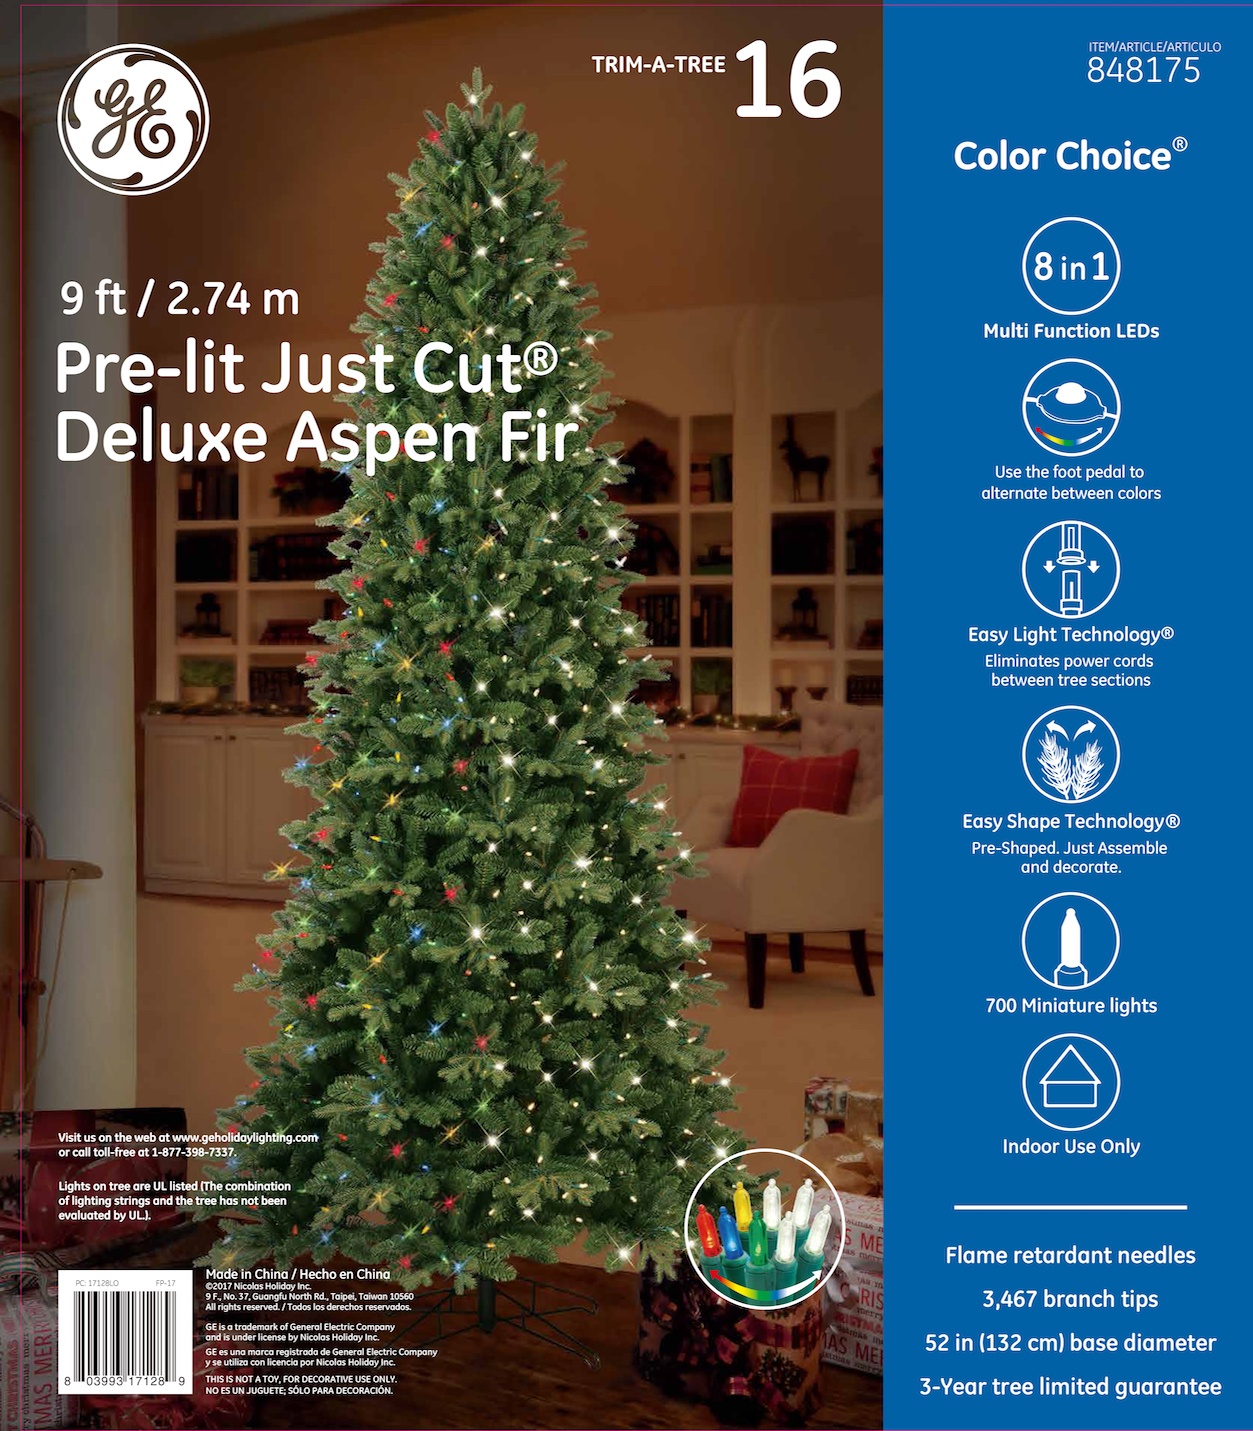 17128 - GE Just Cut® Deluxe Aspen Fir, 9 ft., Color Choice® LED, 700ct 7mm Lights, Warm White ...